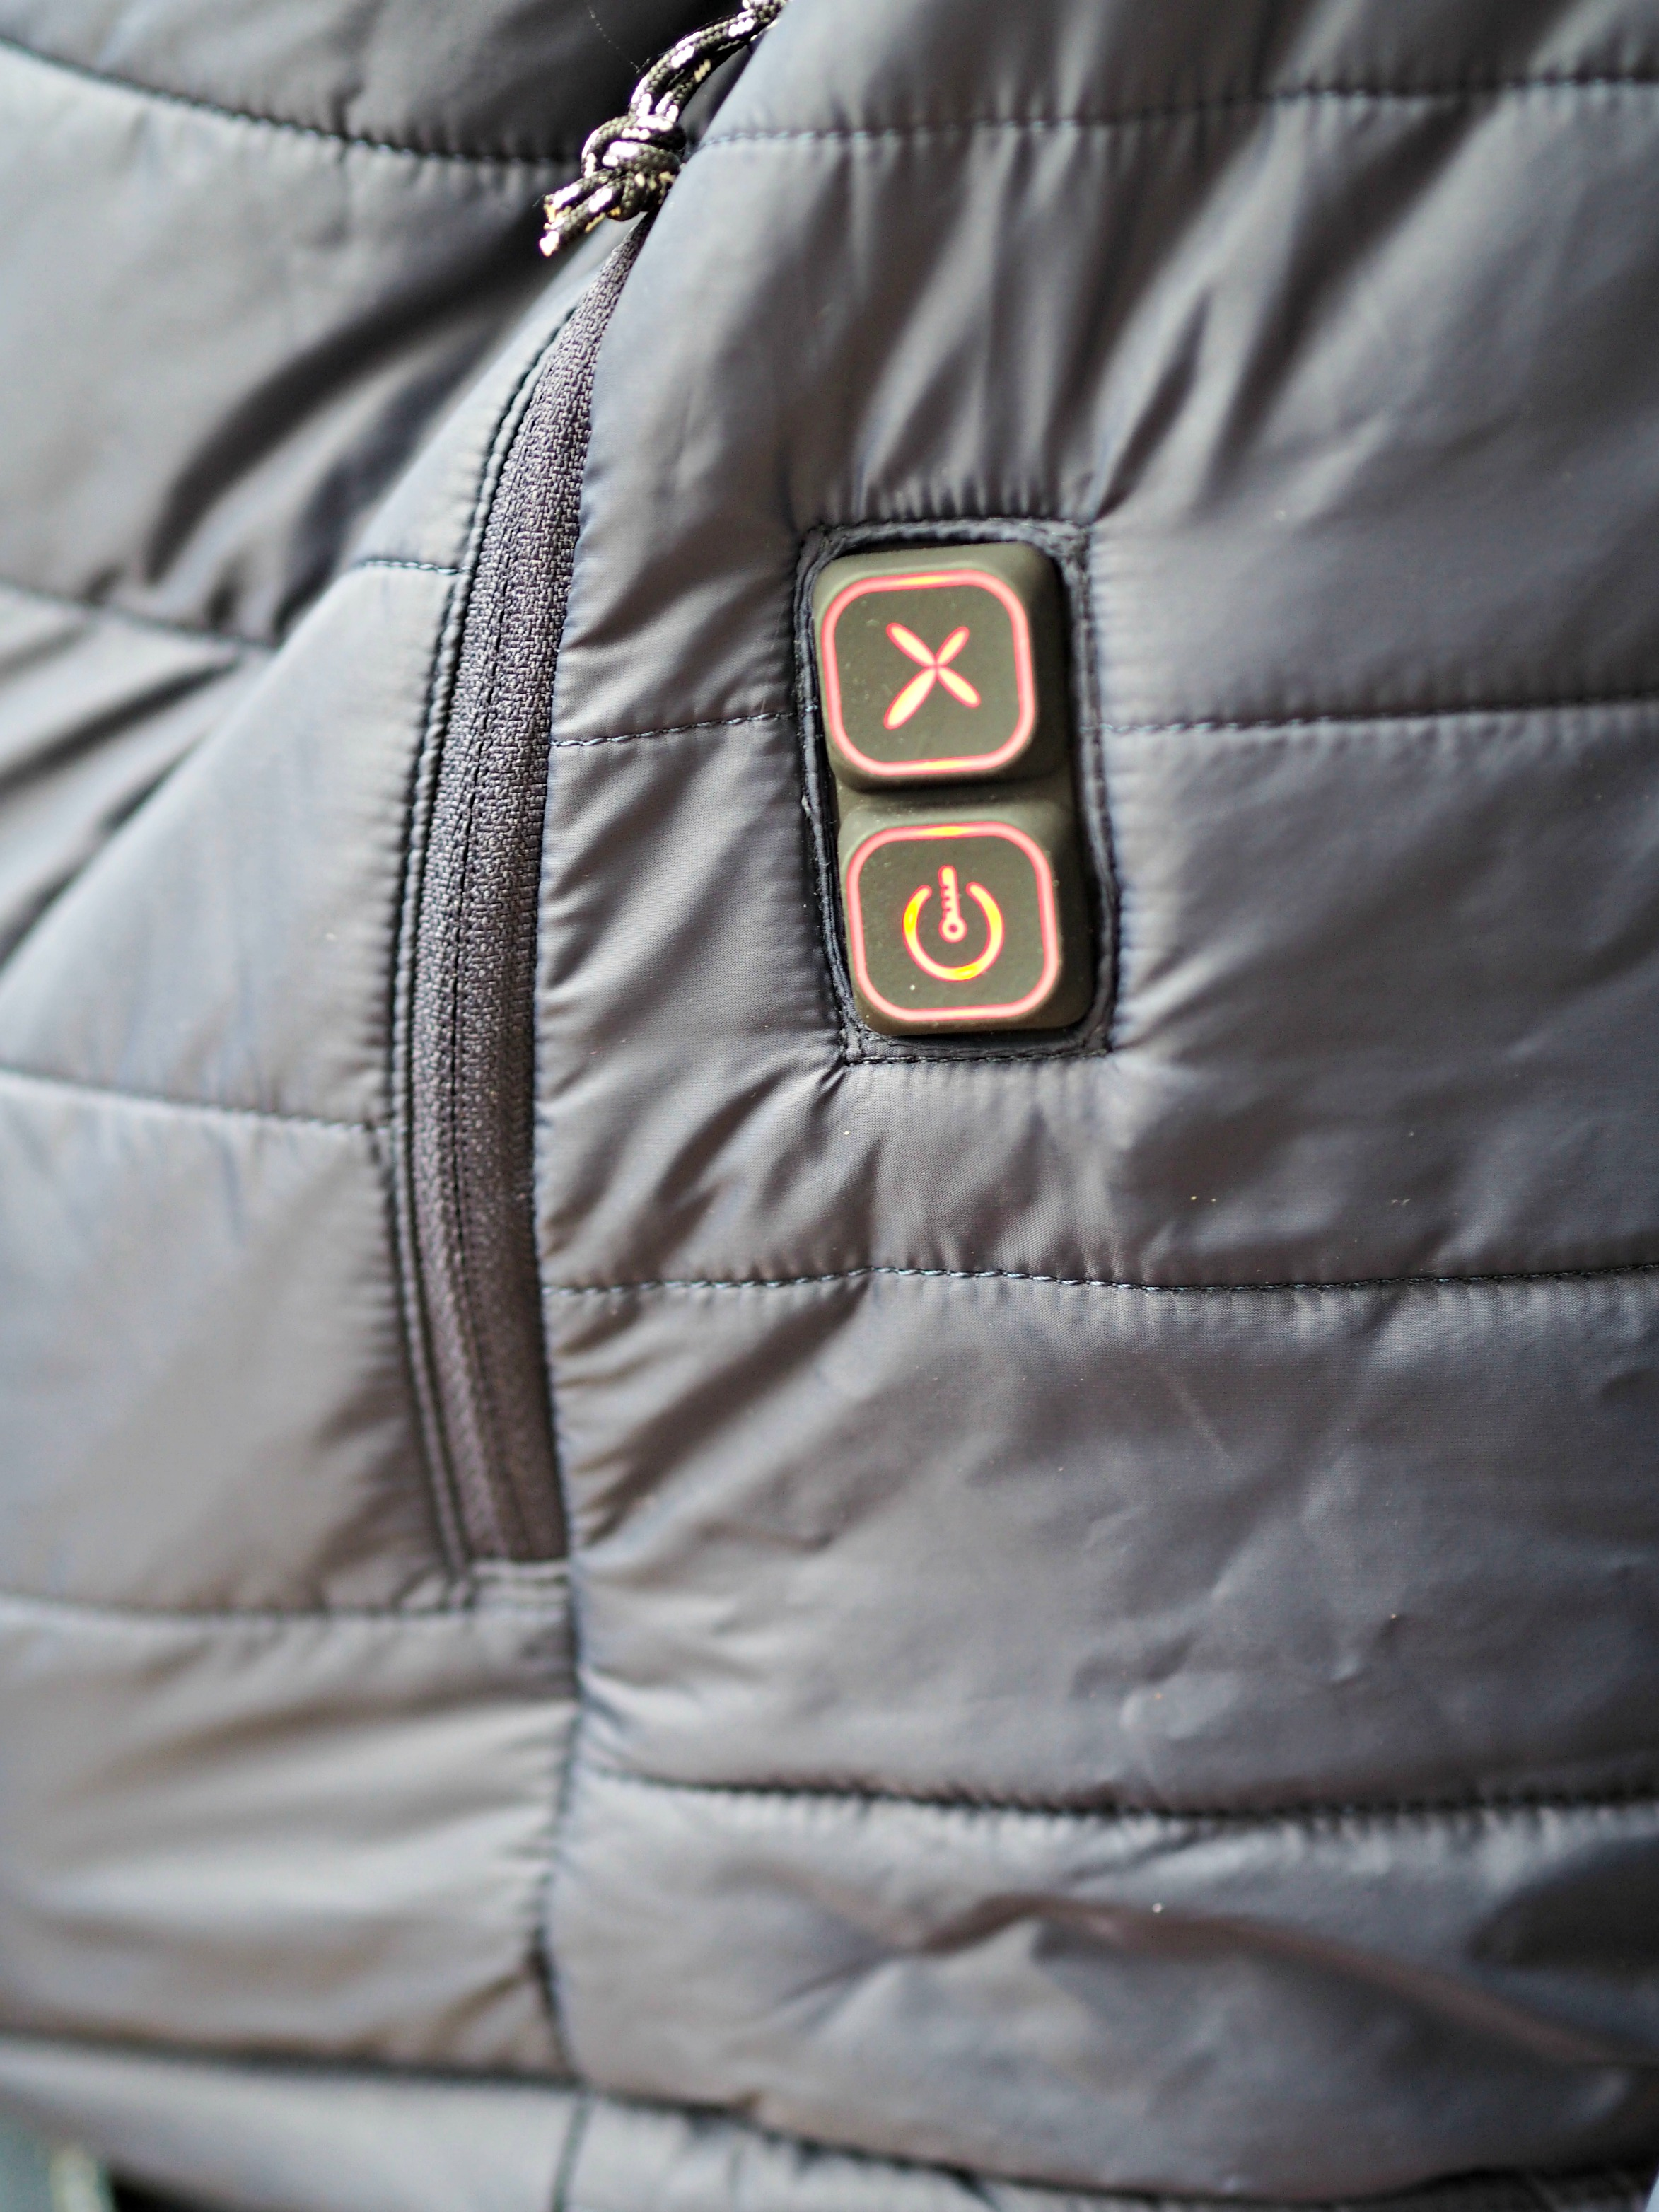 Flexwarm 8k Heated Jacket Review - button controls